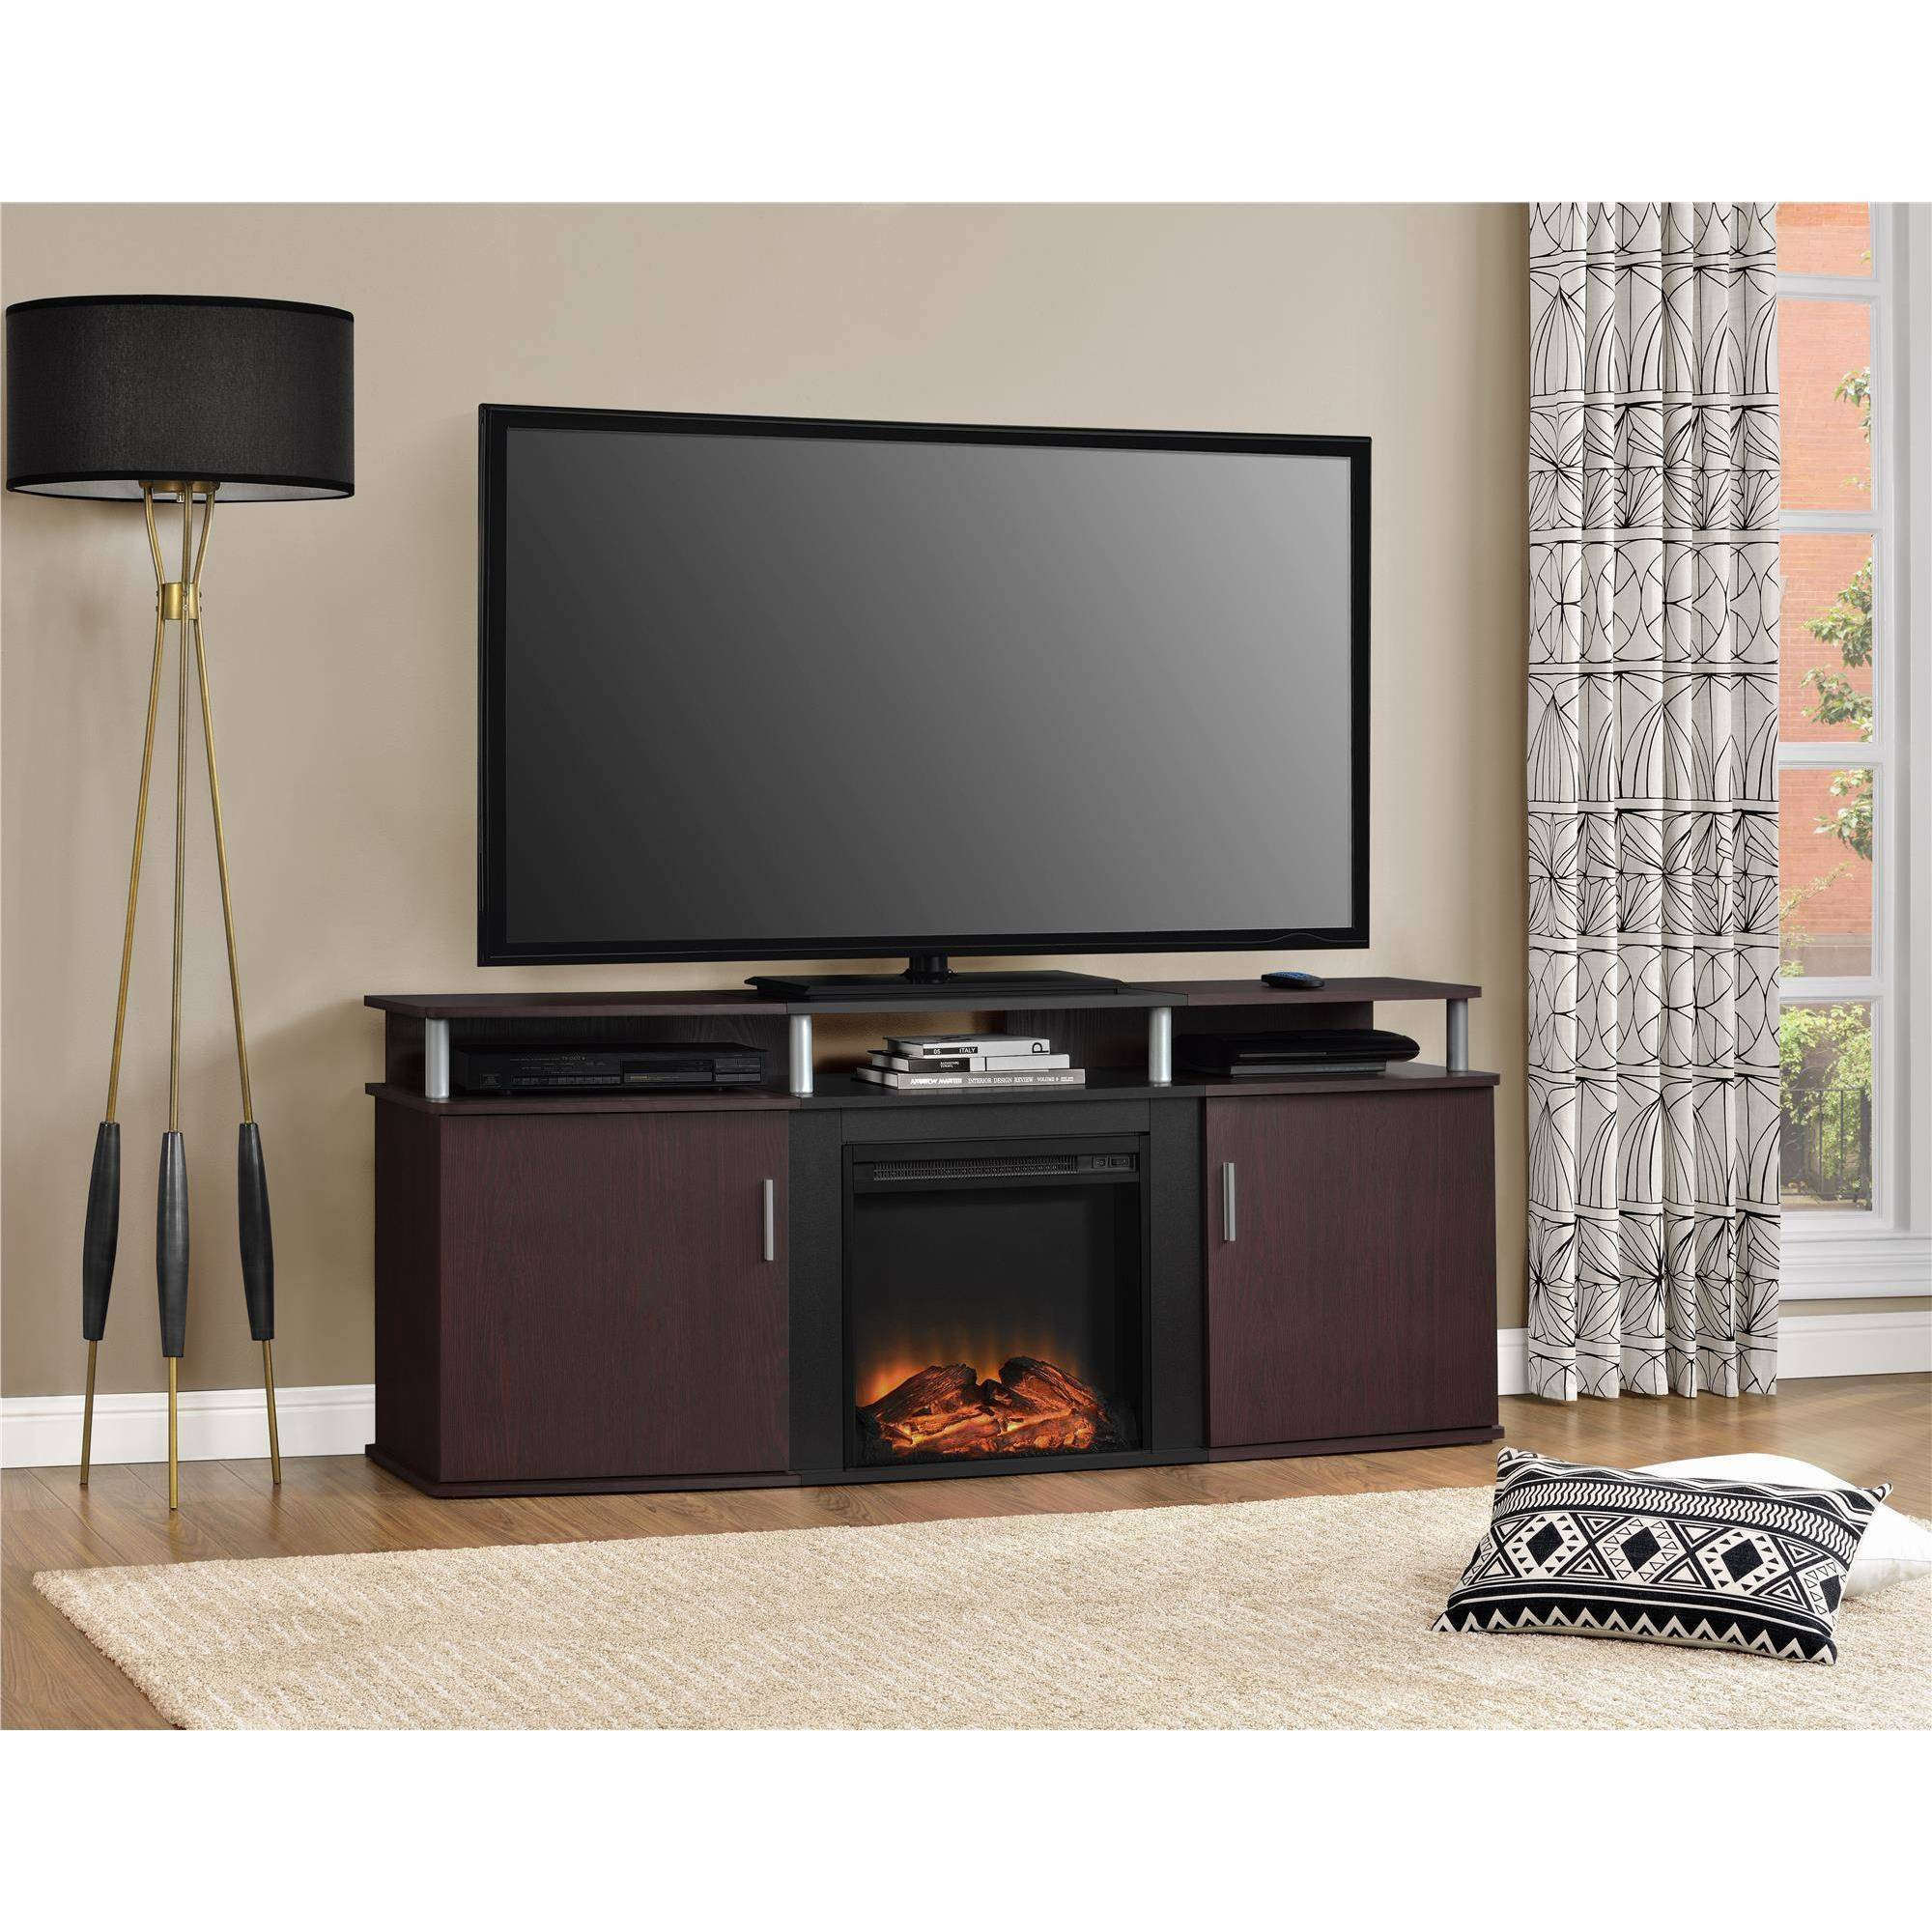 Image Is Loading Carson Fireplace TV Console For TVs Up To